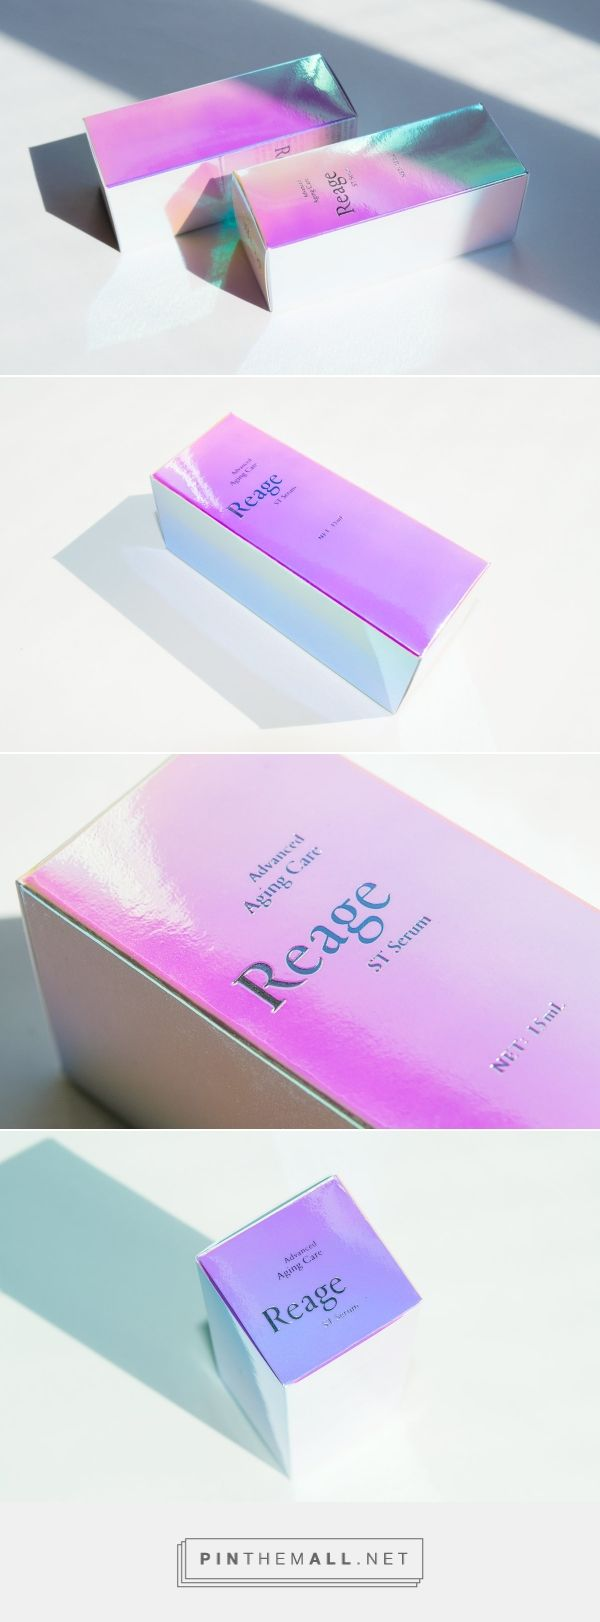 Reage - Packaging of the World - Creative Package Design Gallery - http://www.packagingoftheworld.com/2016/11/reage.html